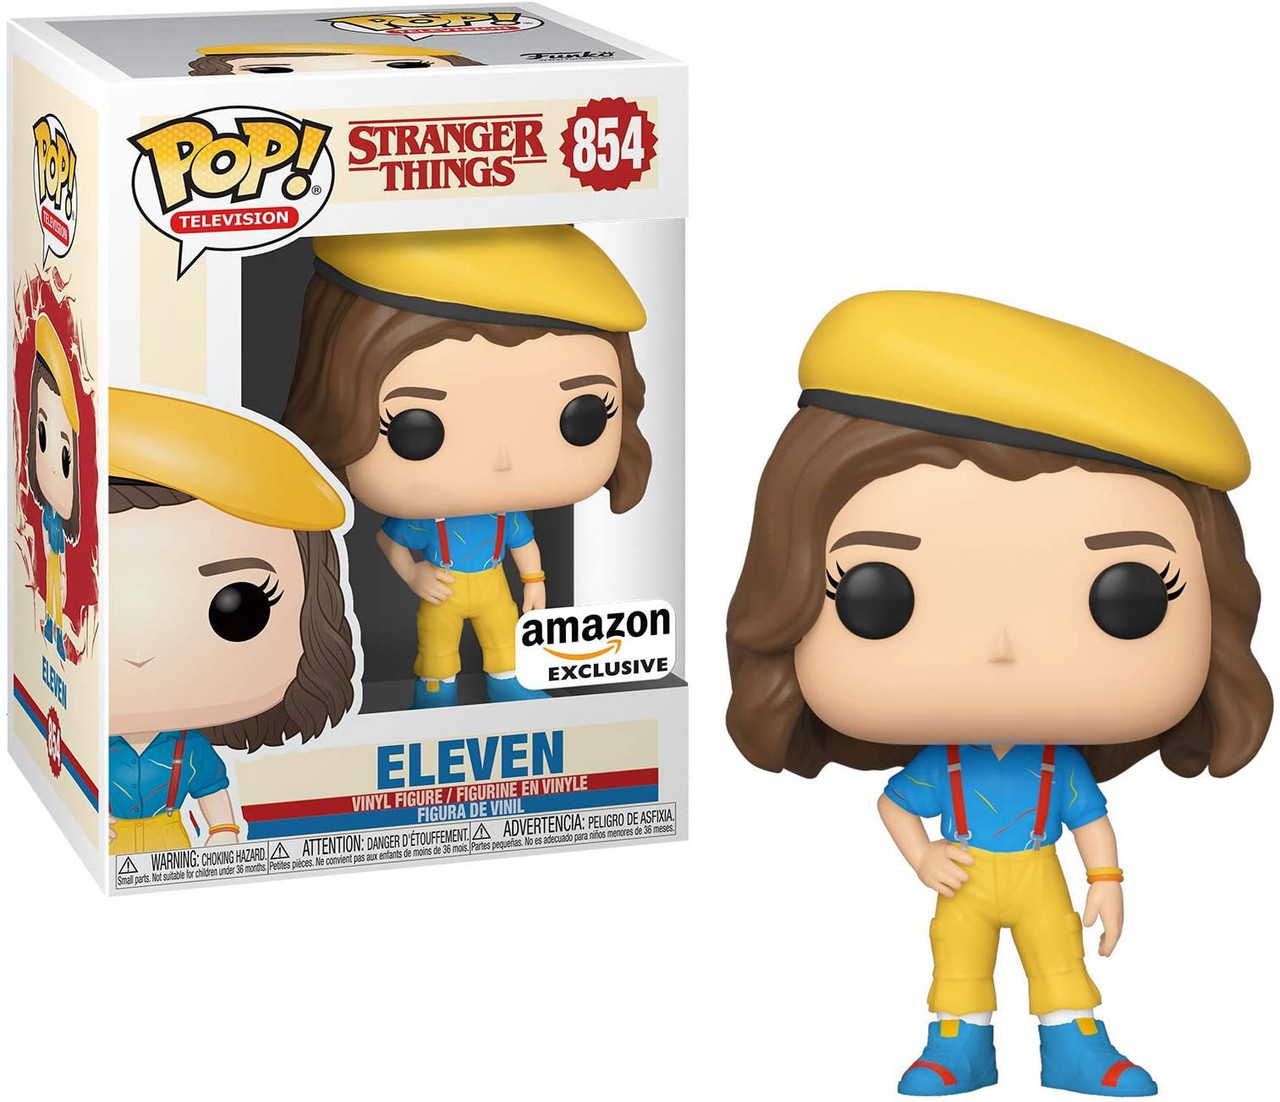 FIGURINE FUNKO POP ELEVEN MALL OUTFIT STRANGER THINGS